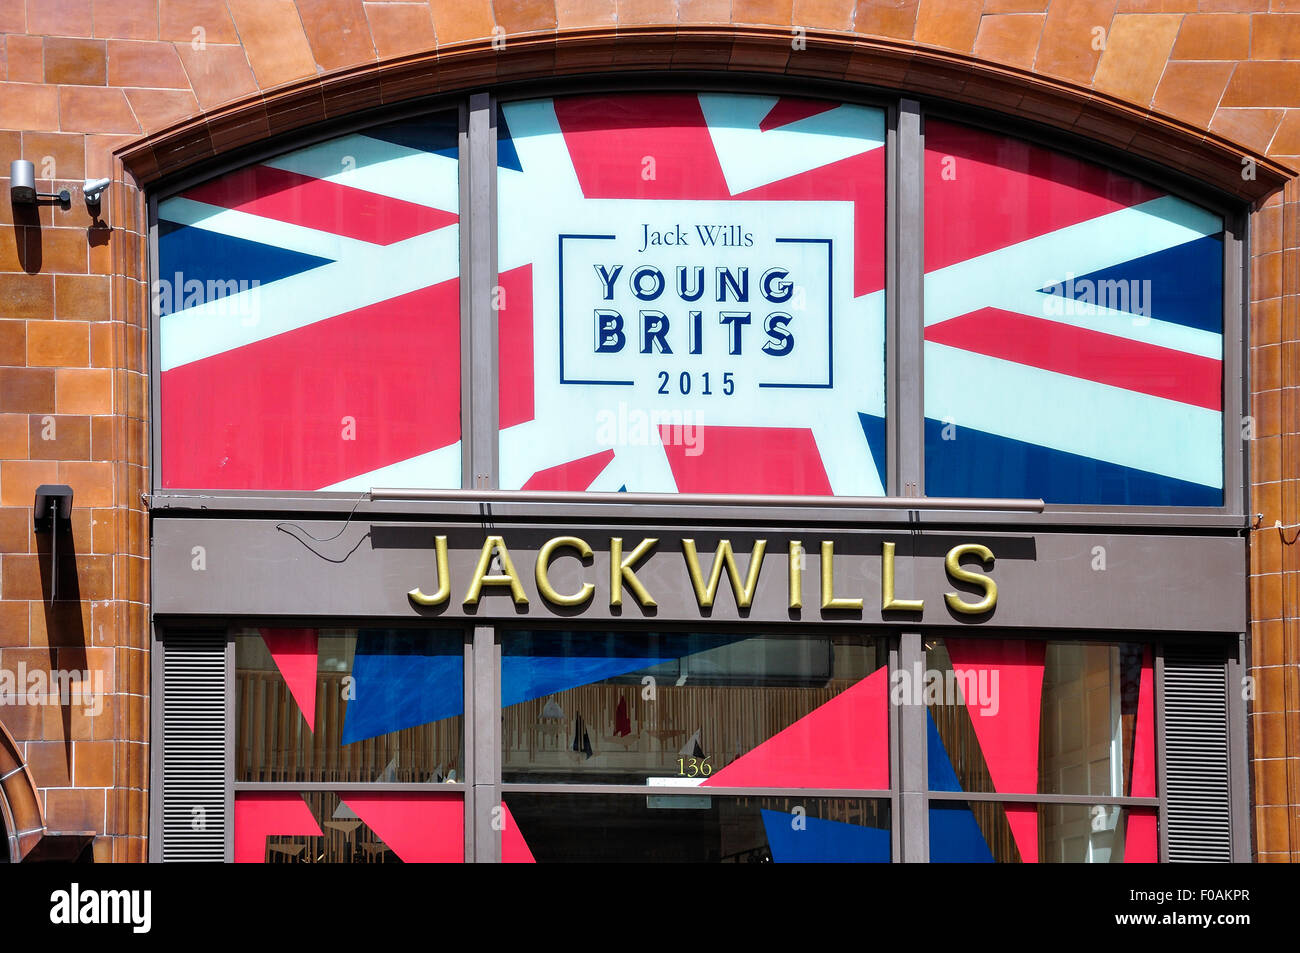 Jack Wills fashion store, Long Acre, Covent Garden, City of Westminster, London, England, United Kingdom Photo Stock